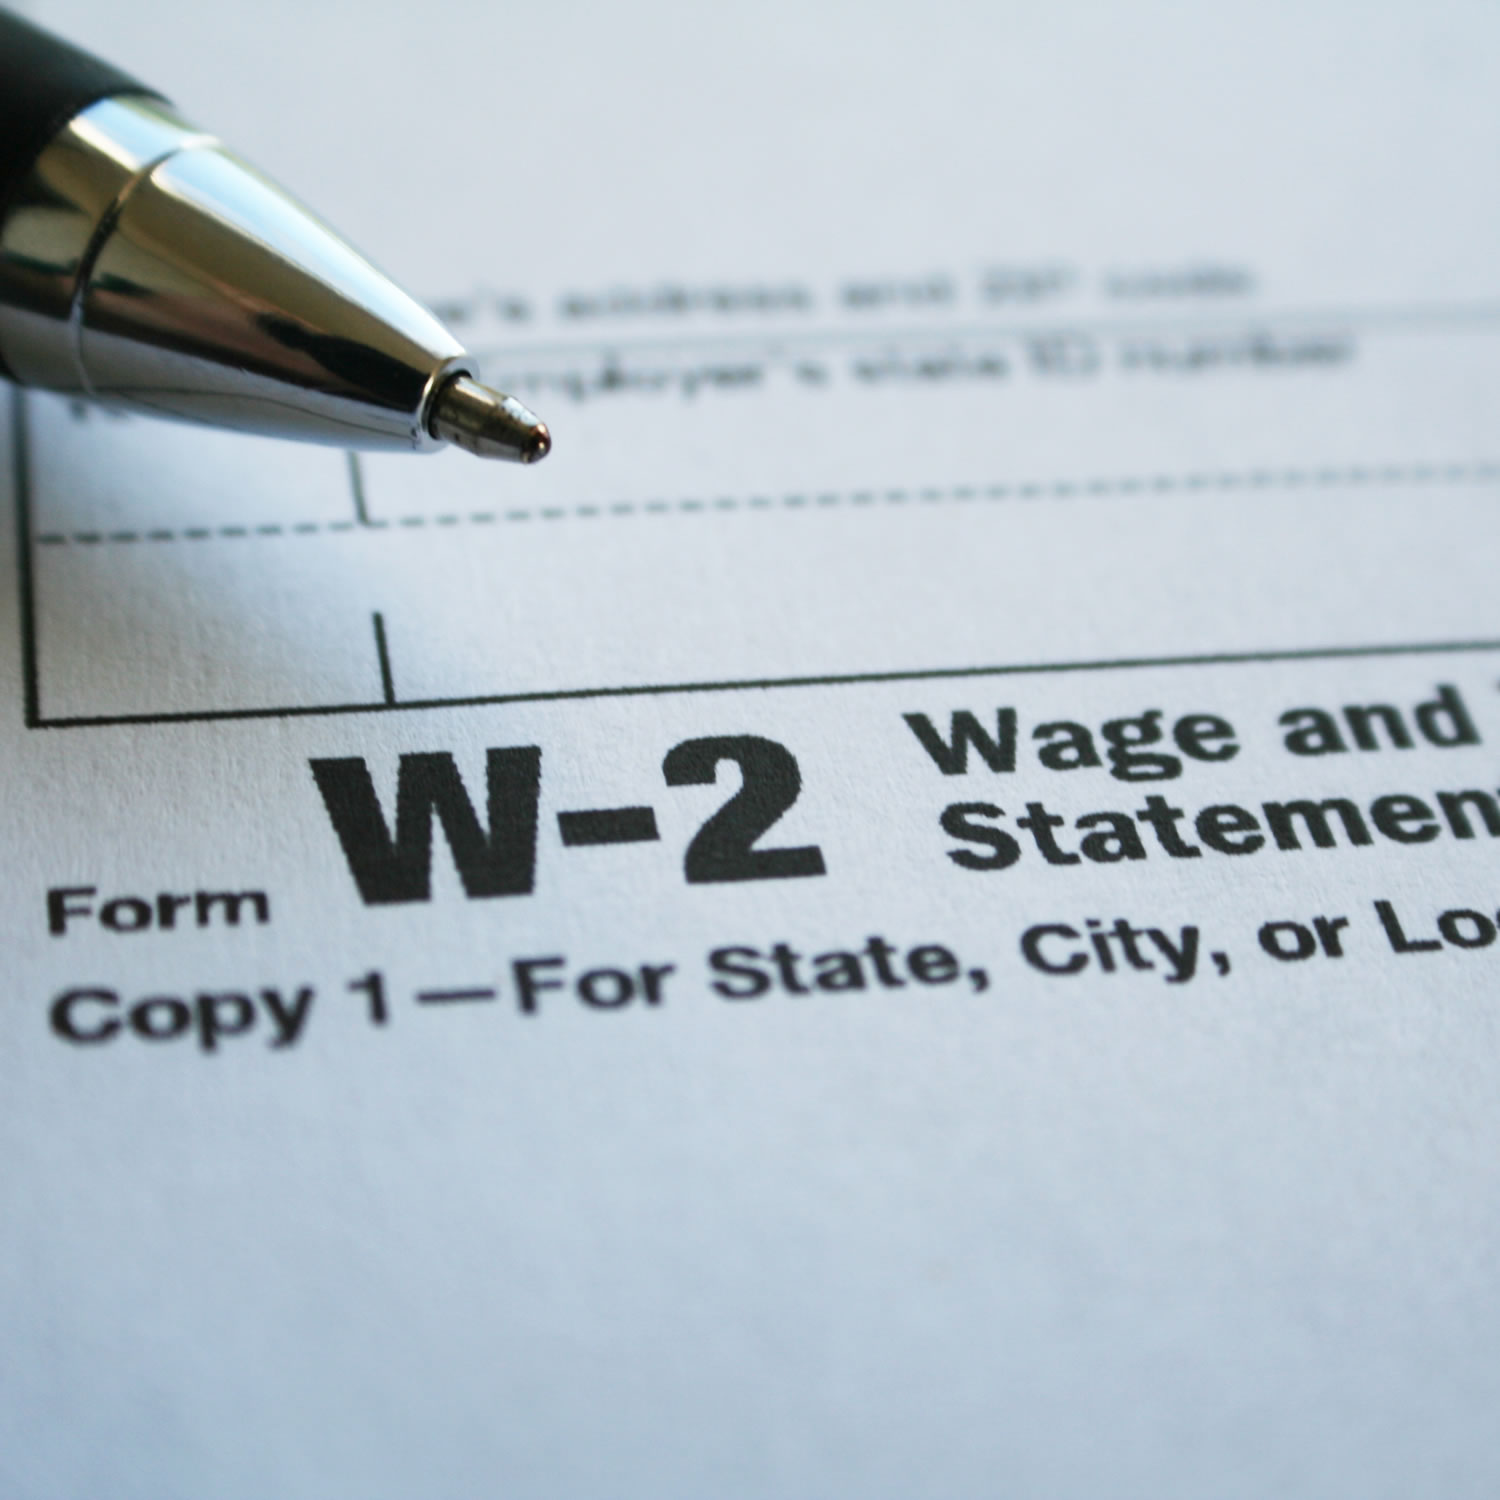 SHRM Objects to EEOC's Collection of W-2 Wage Information